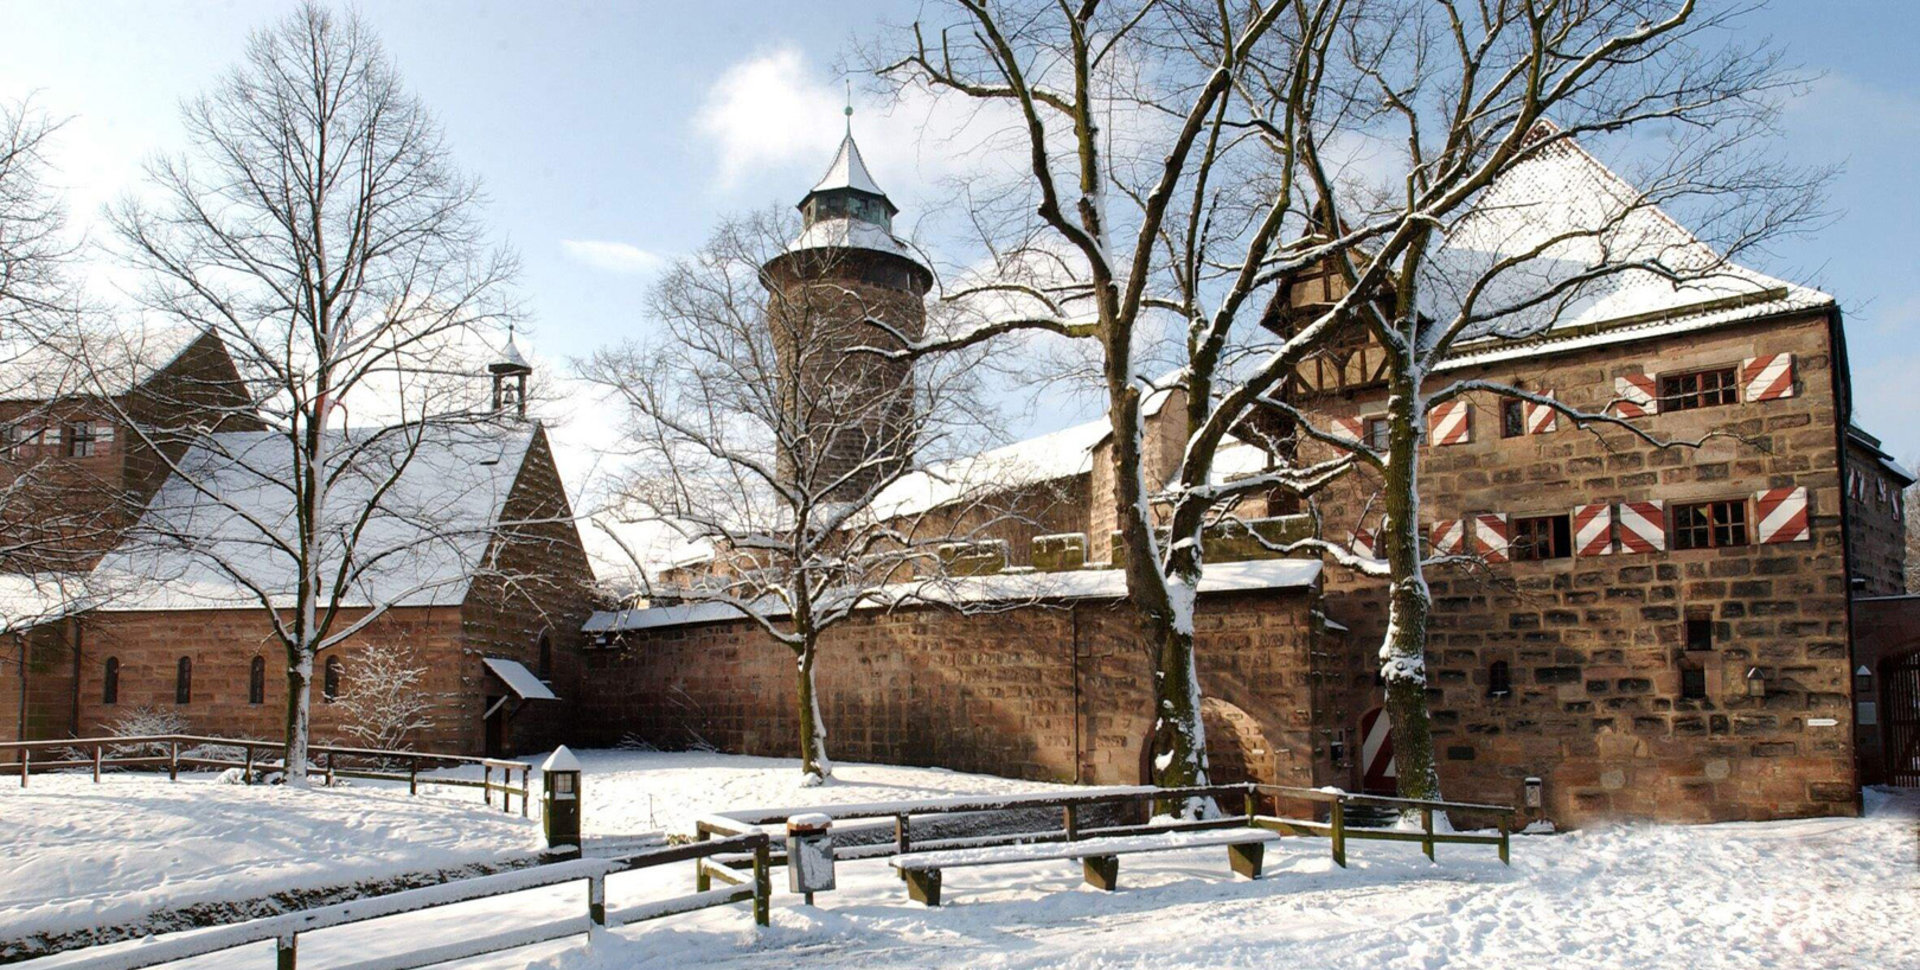 Home: Kaiserburg Nürnberg im Winter